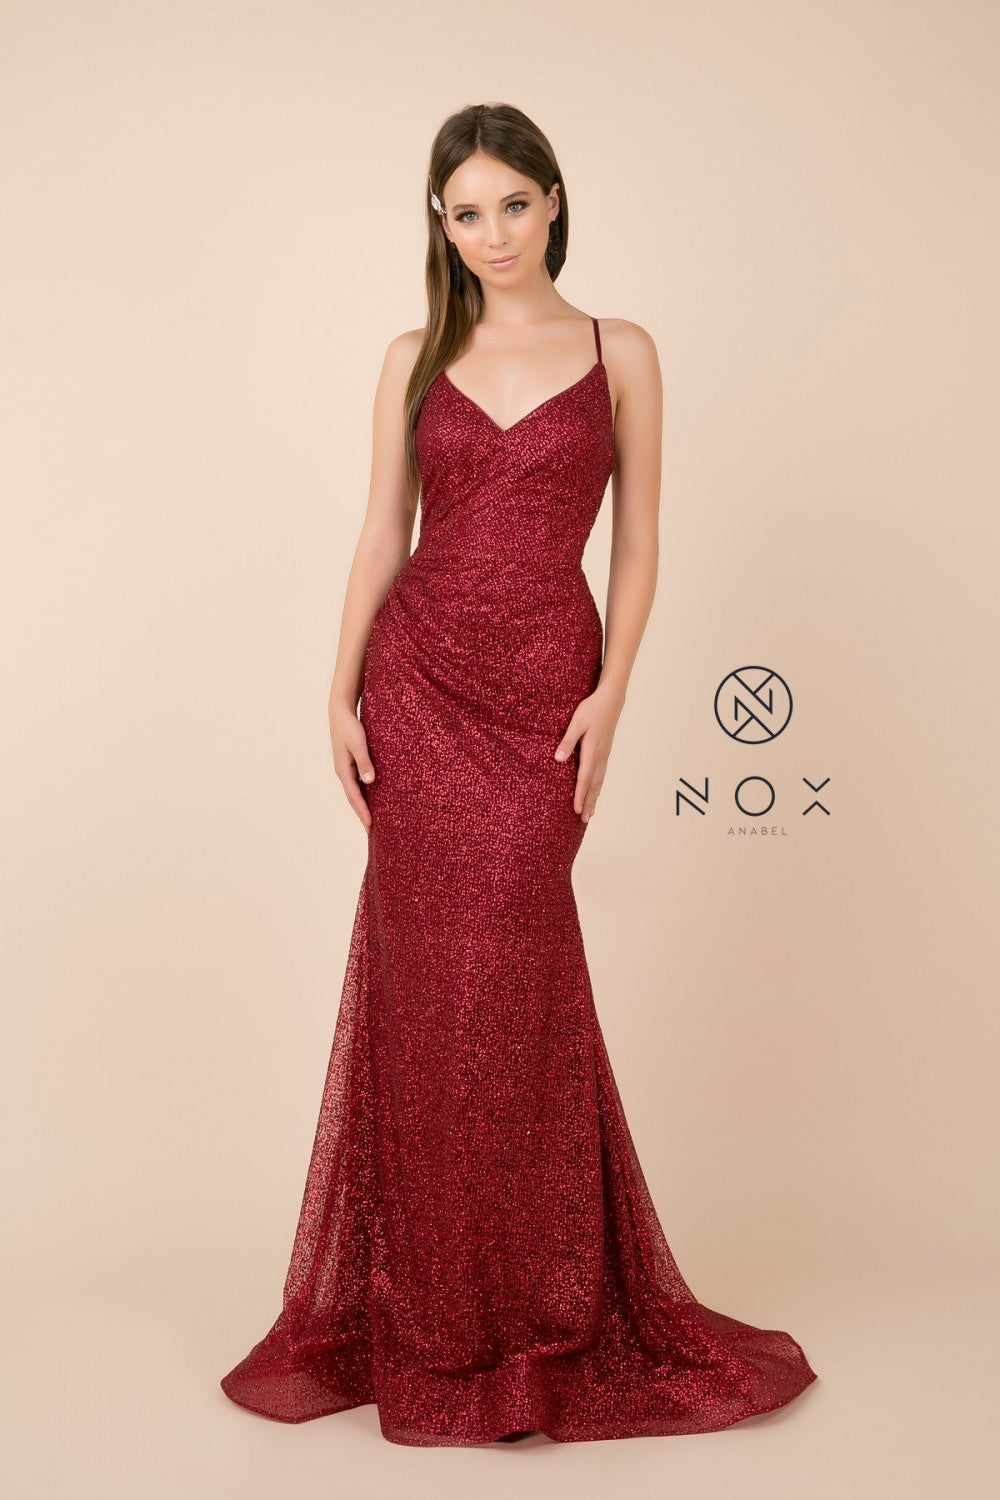 N T290 - Glitter Metallic Fit & Flare with V-Neck Gathered Front & Lace Up Corset Back - Diggz Prom